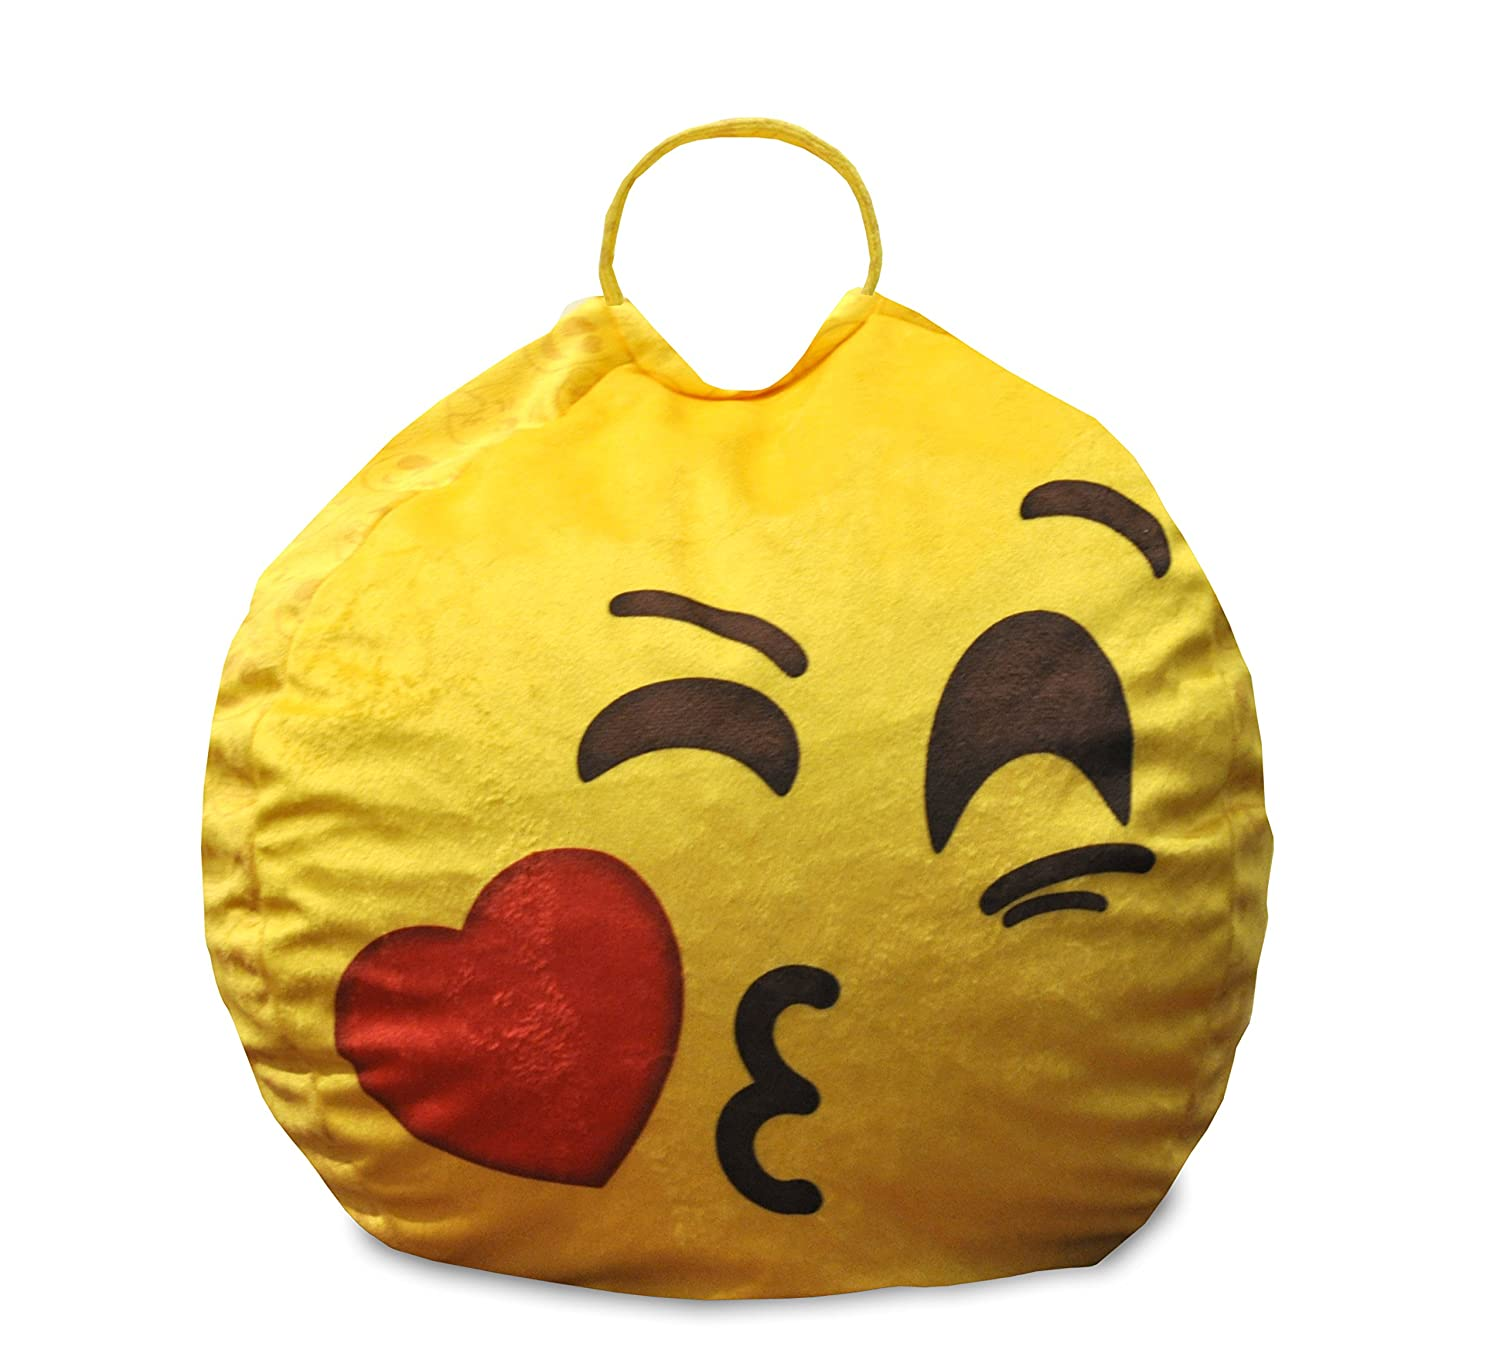 Emoji Pals Sealed with a Kids Bean Bag with Handle, Yellow, 55